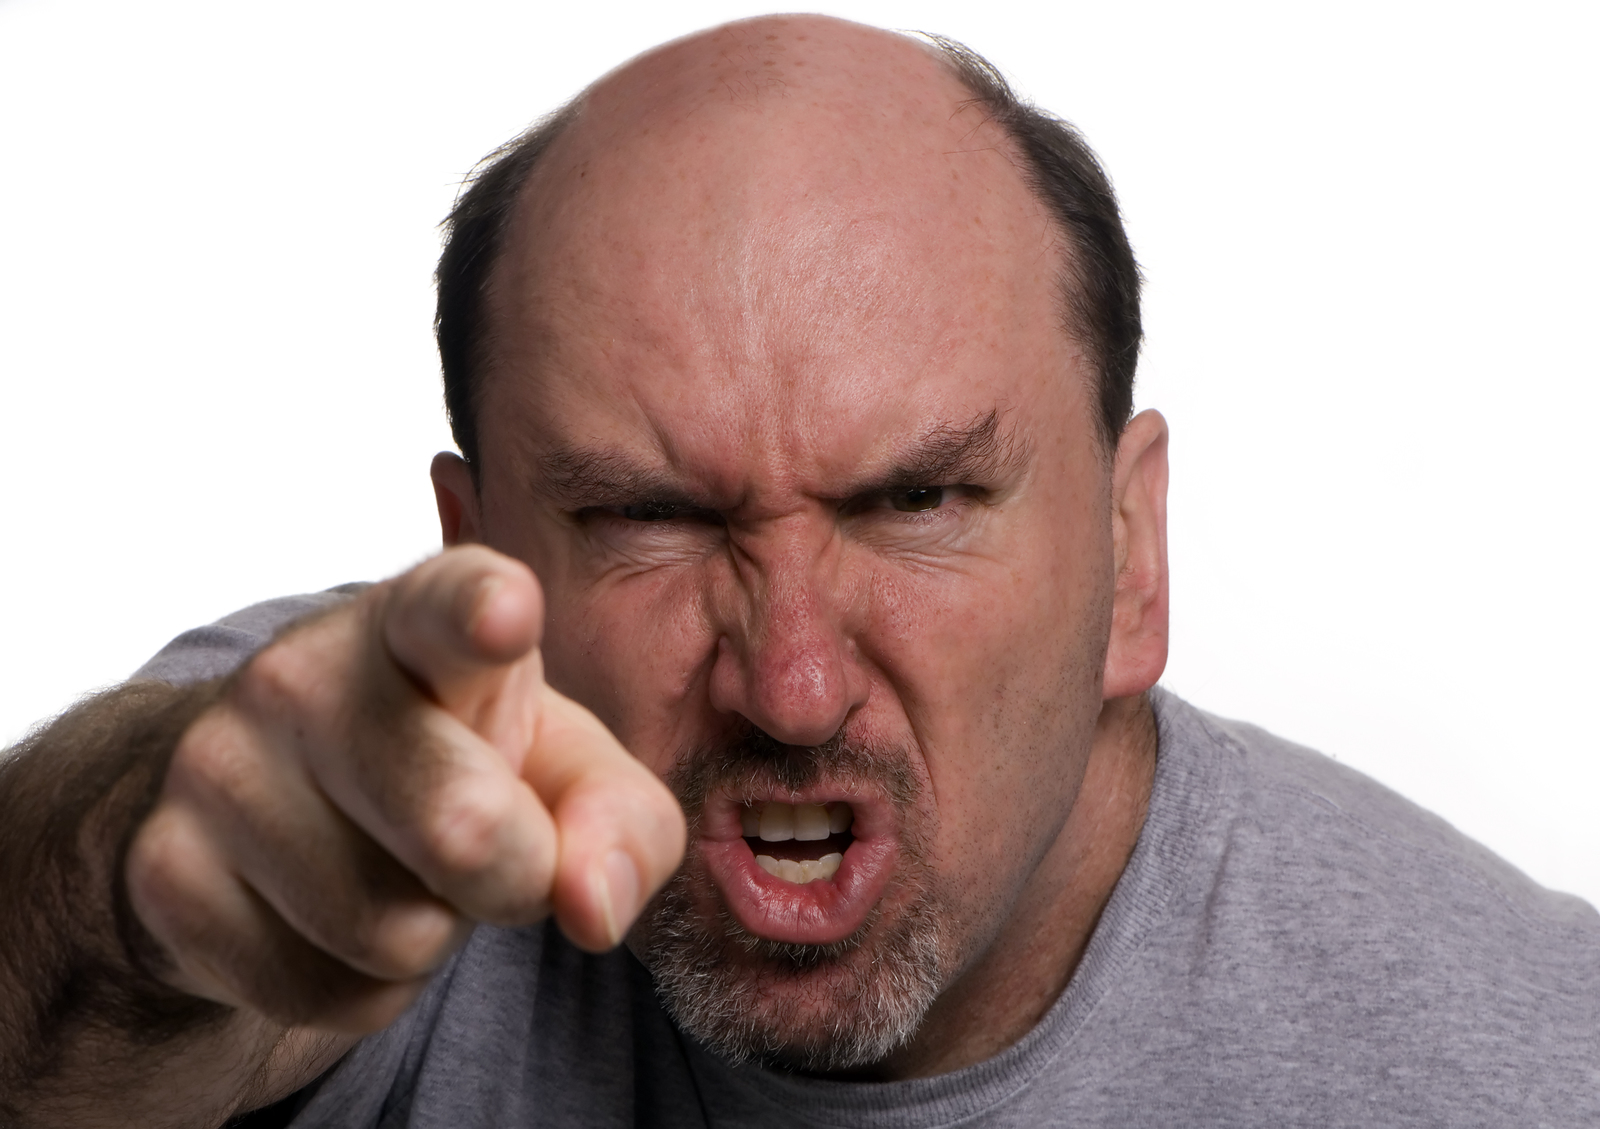 Stock photo of a middle aged white bald man with beard and mustache, looking very angry, pointing an accusing finger at the viewer